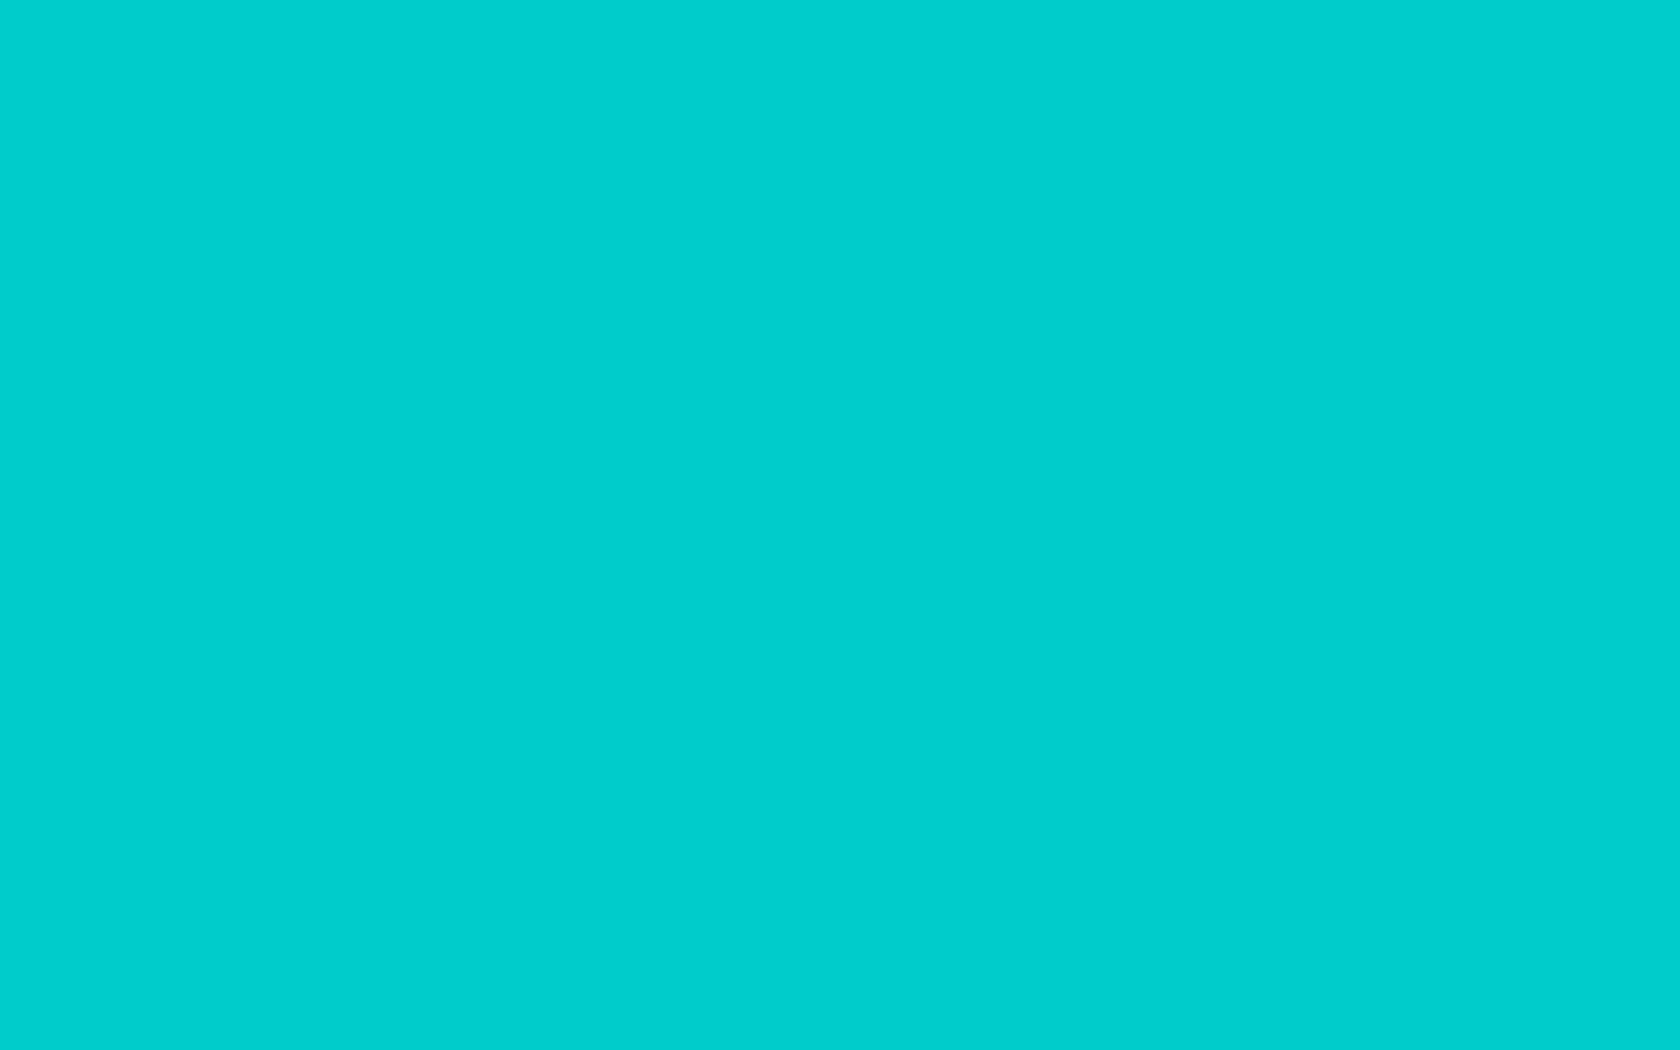 1680x1050 Robin Egg Blue Solid Color Background